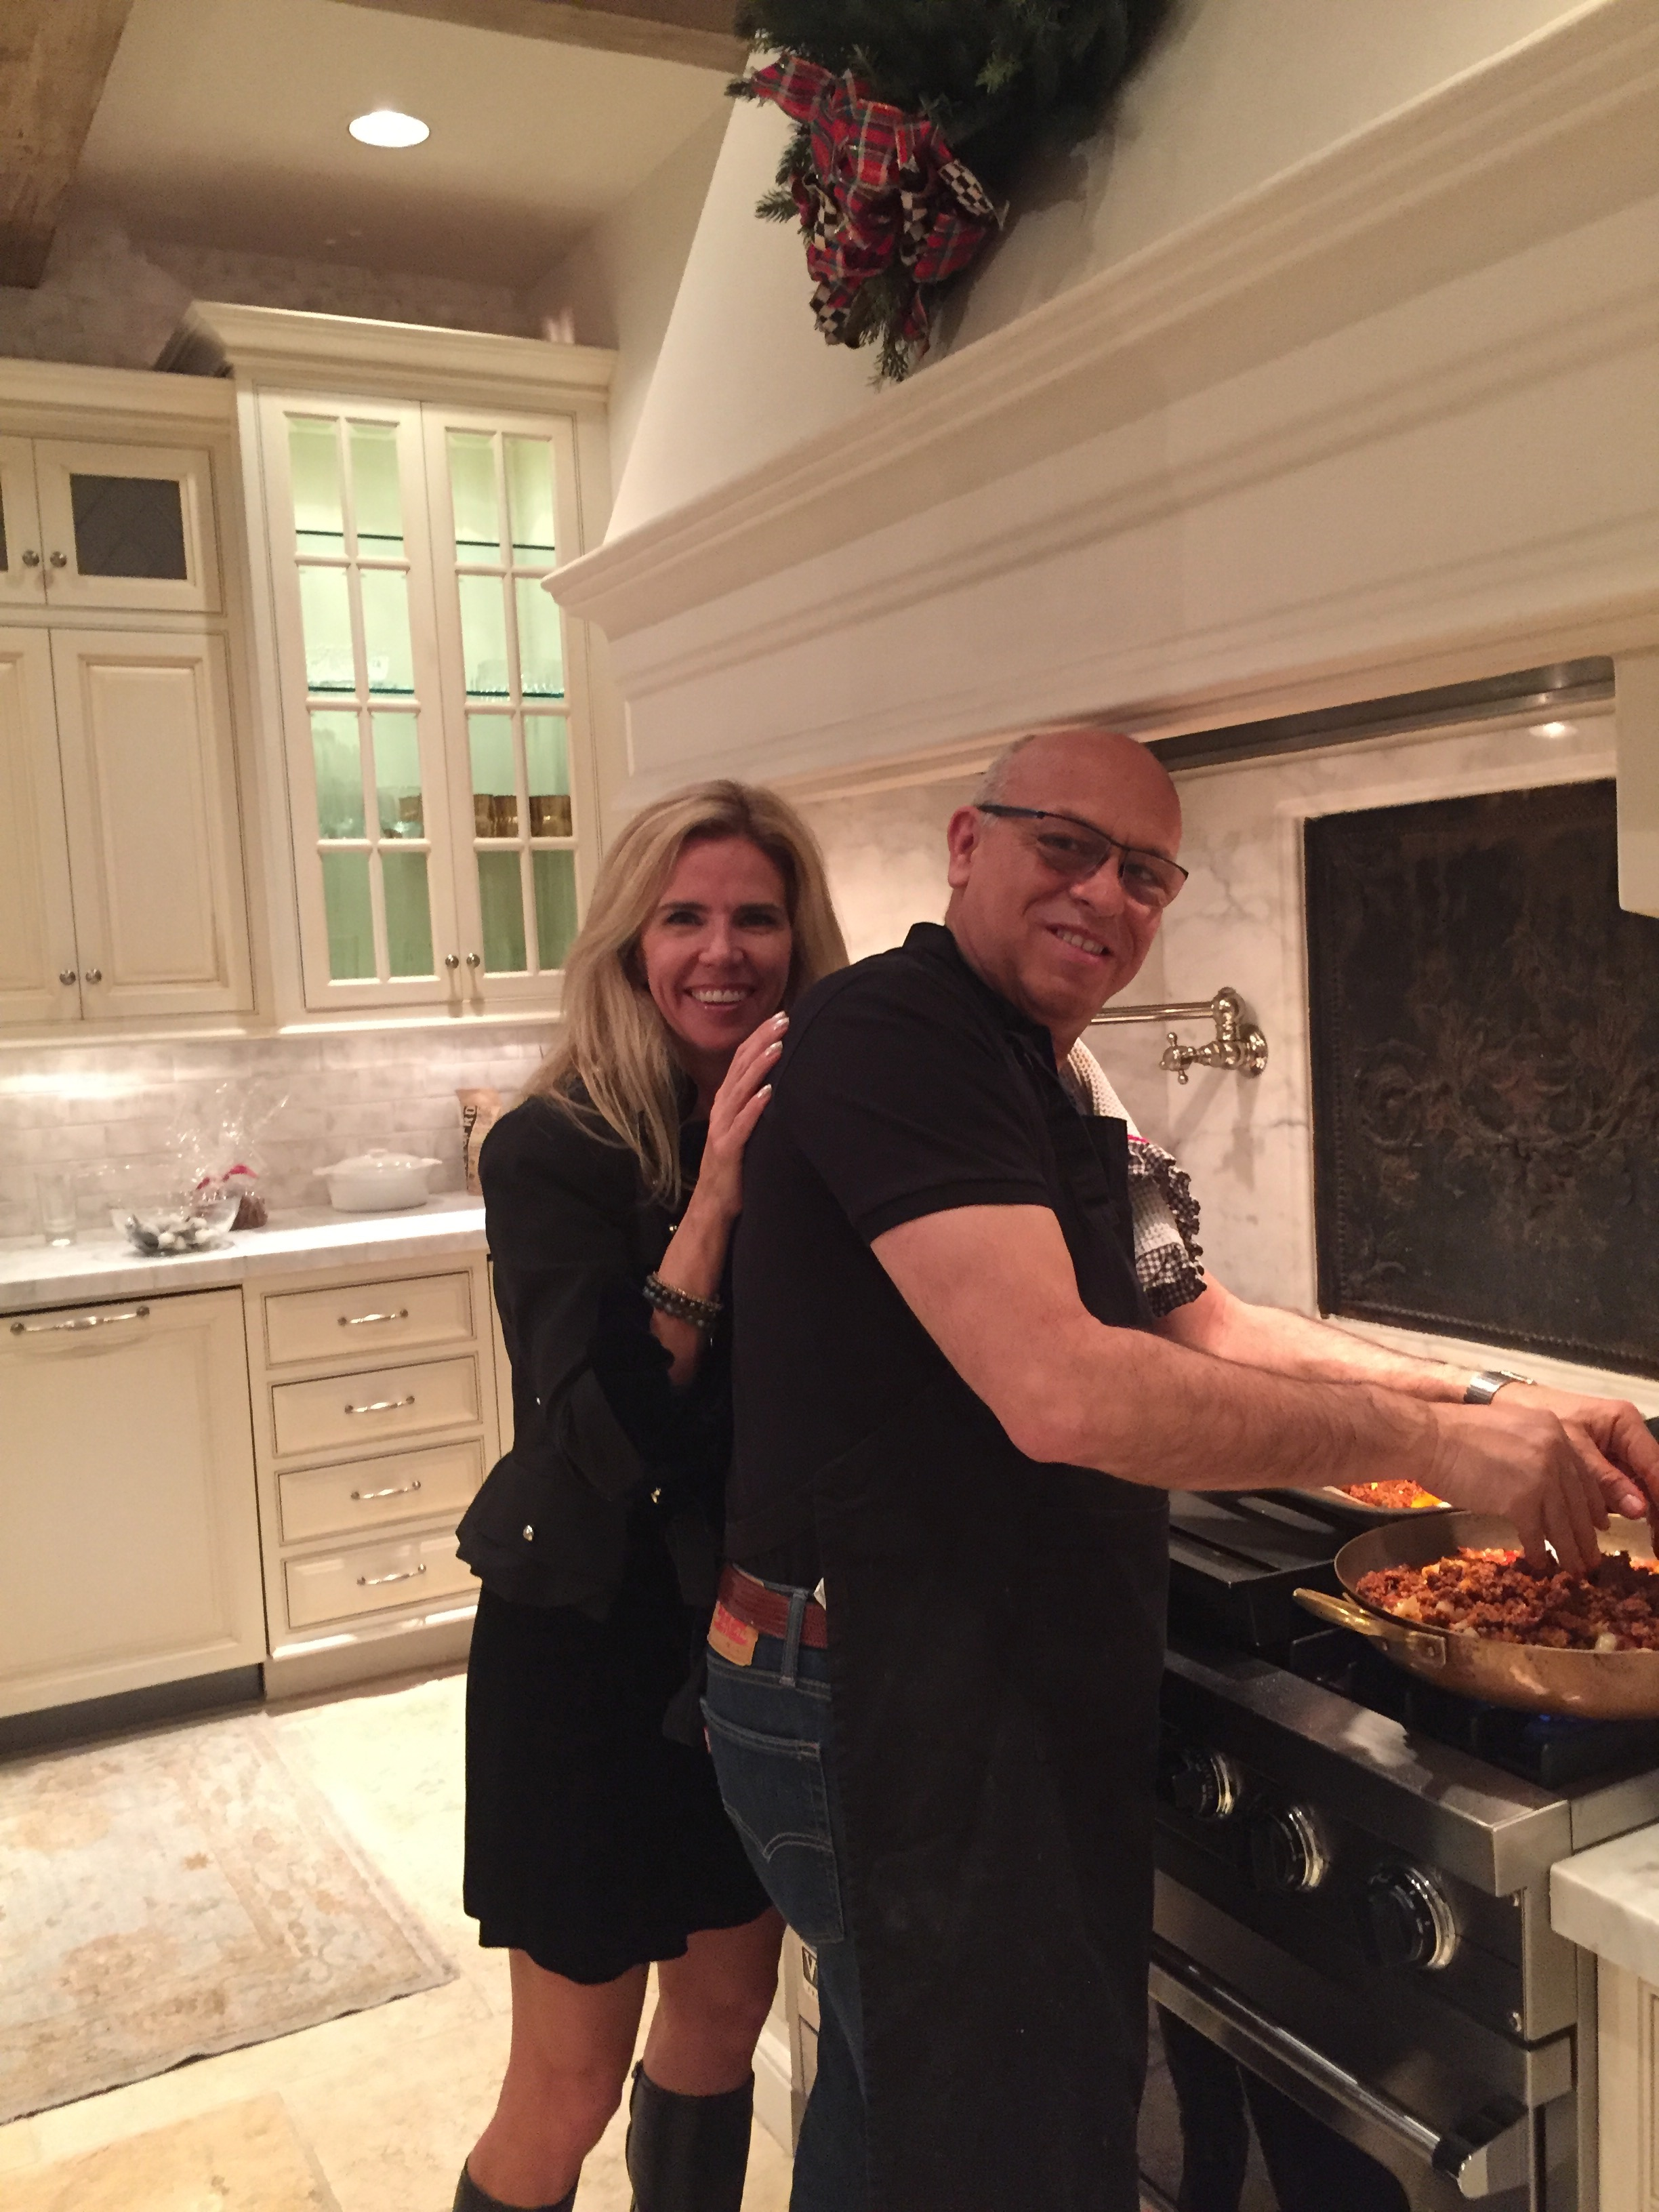 Making paella with Melissa for our cooking class at the Mullard Residence in Phoenix!